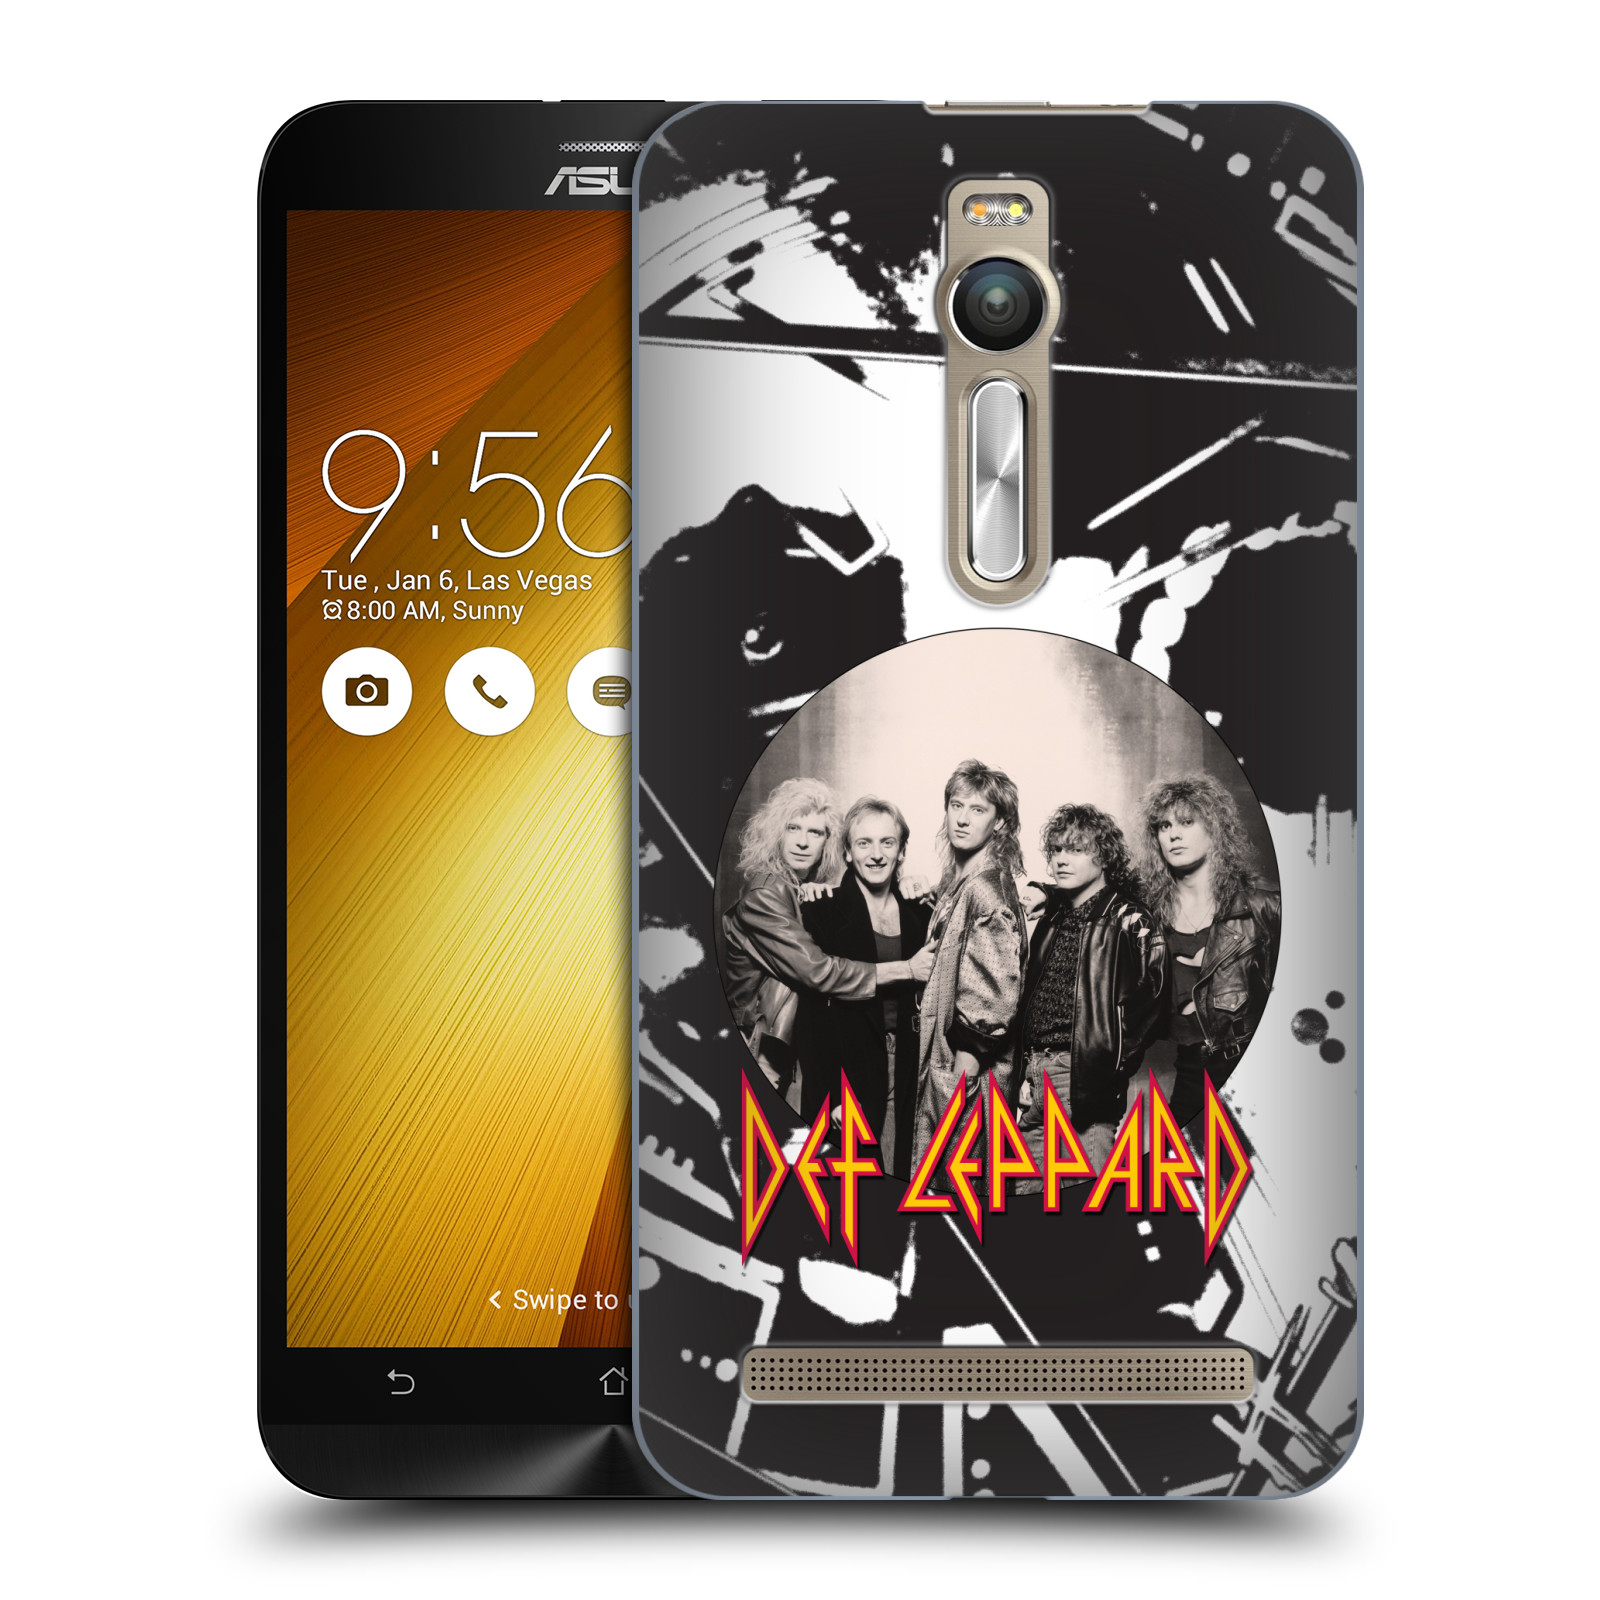 OFFICIAL-DEF-LEPPARD-PHOTOS-HARD-BACK-CASE-FOR-ASUS-ZENFONE-PHONES